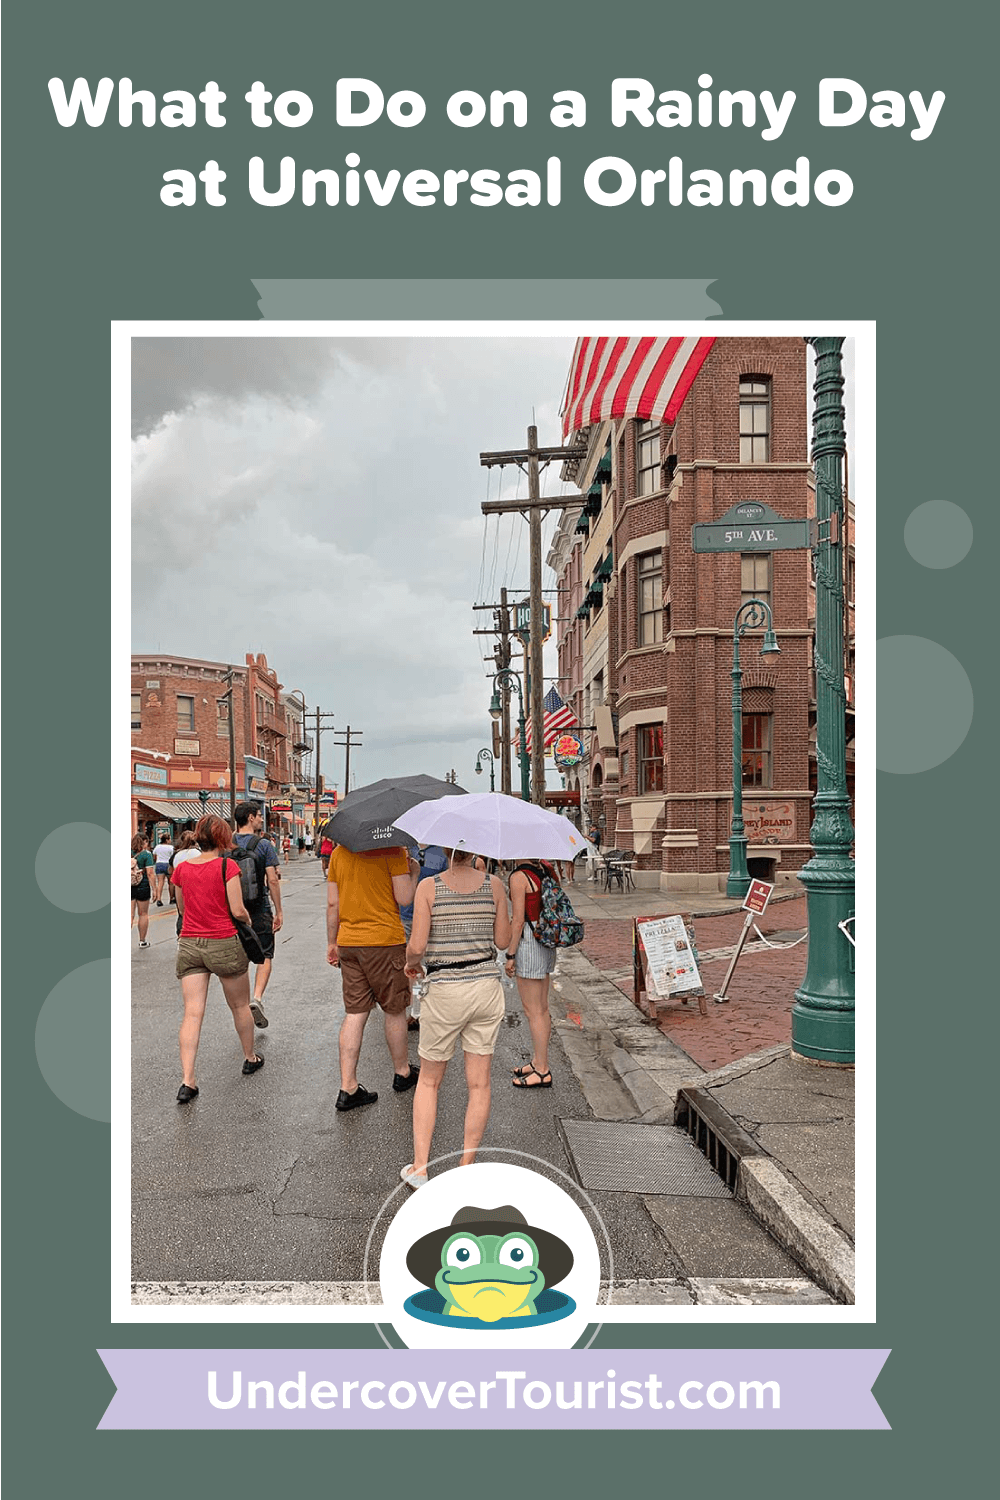 What to Do on a Rainy Day at Universal Orlando